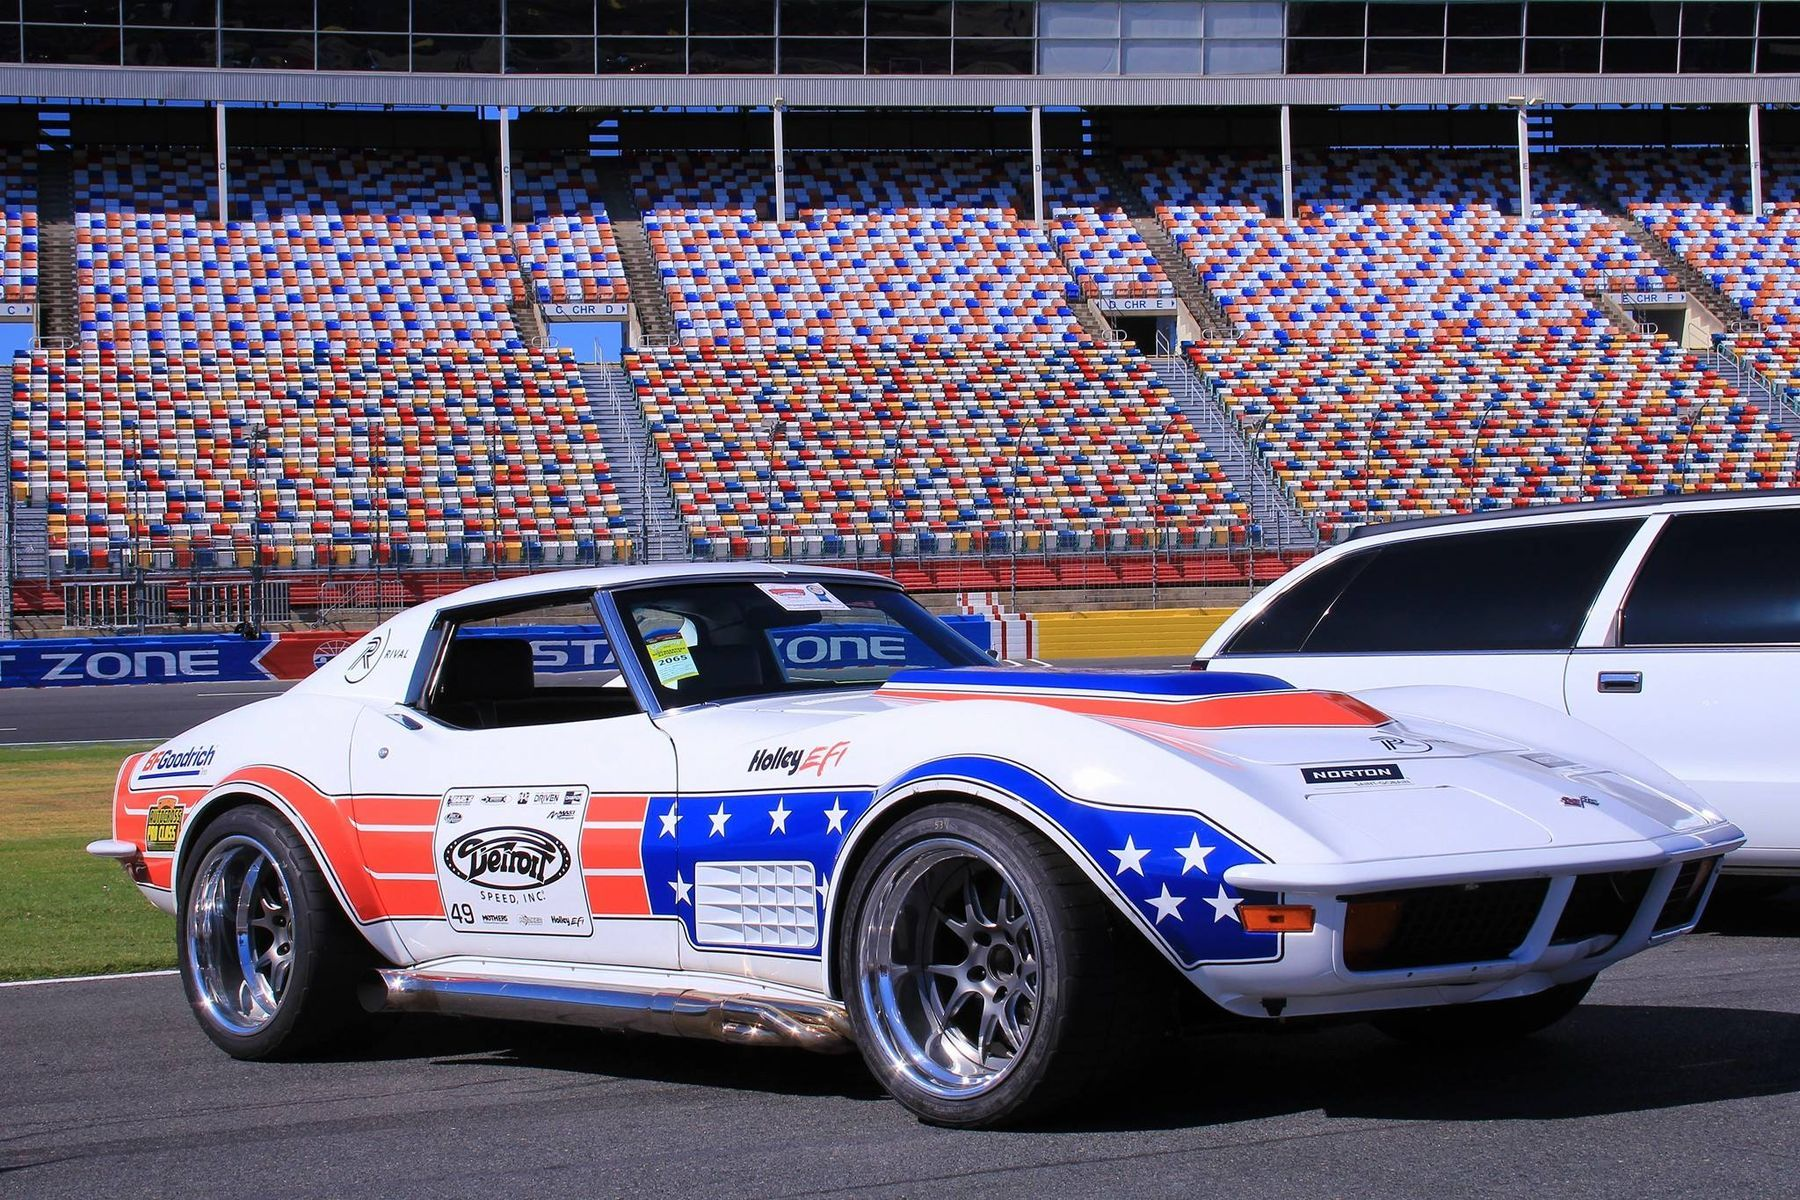 1972 Chevrolet Corvette | Ryan Mathews is Pro Class Autocross Winner at Goodguys Charlotte with Detroit Speed's '72 Corvette on Forgeline GA3 Wheels